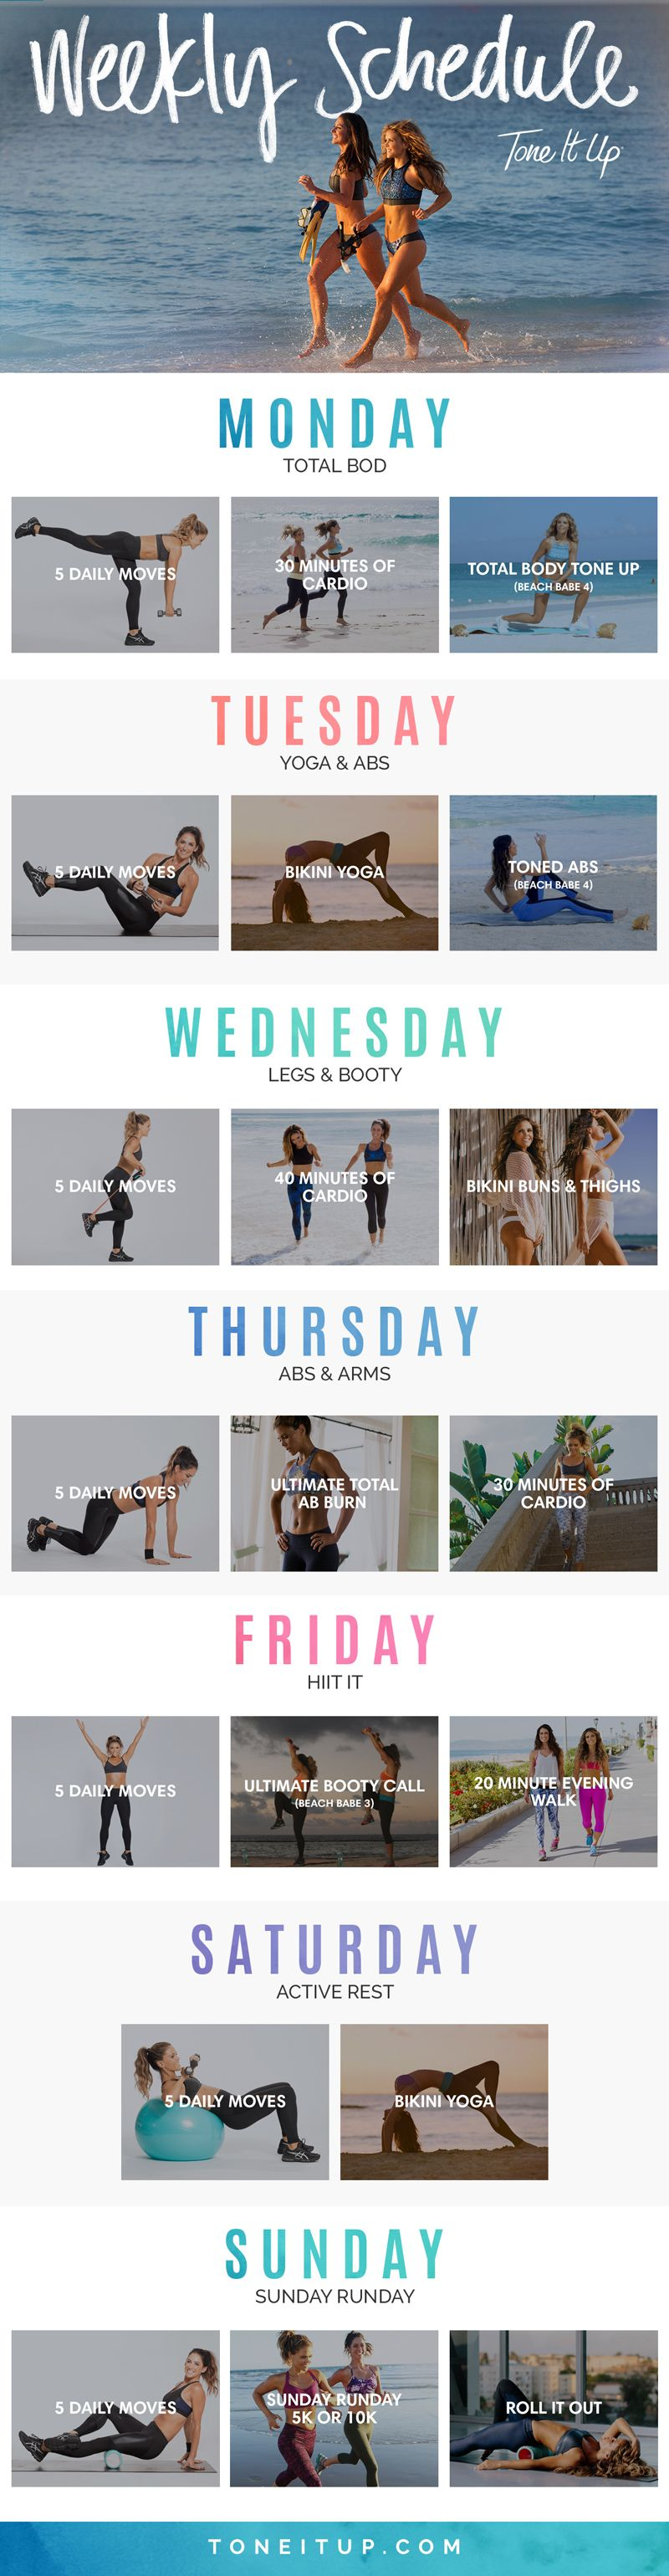 Weekly Workout Schedule Health Fitness Workout Schedule